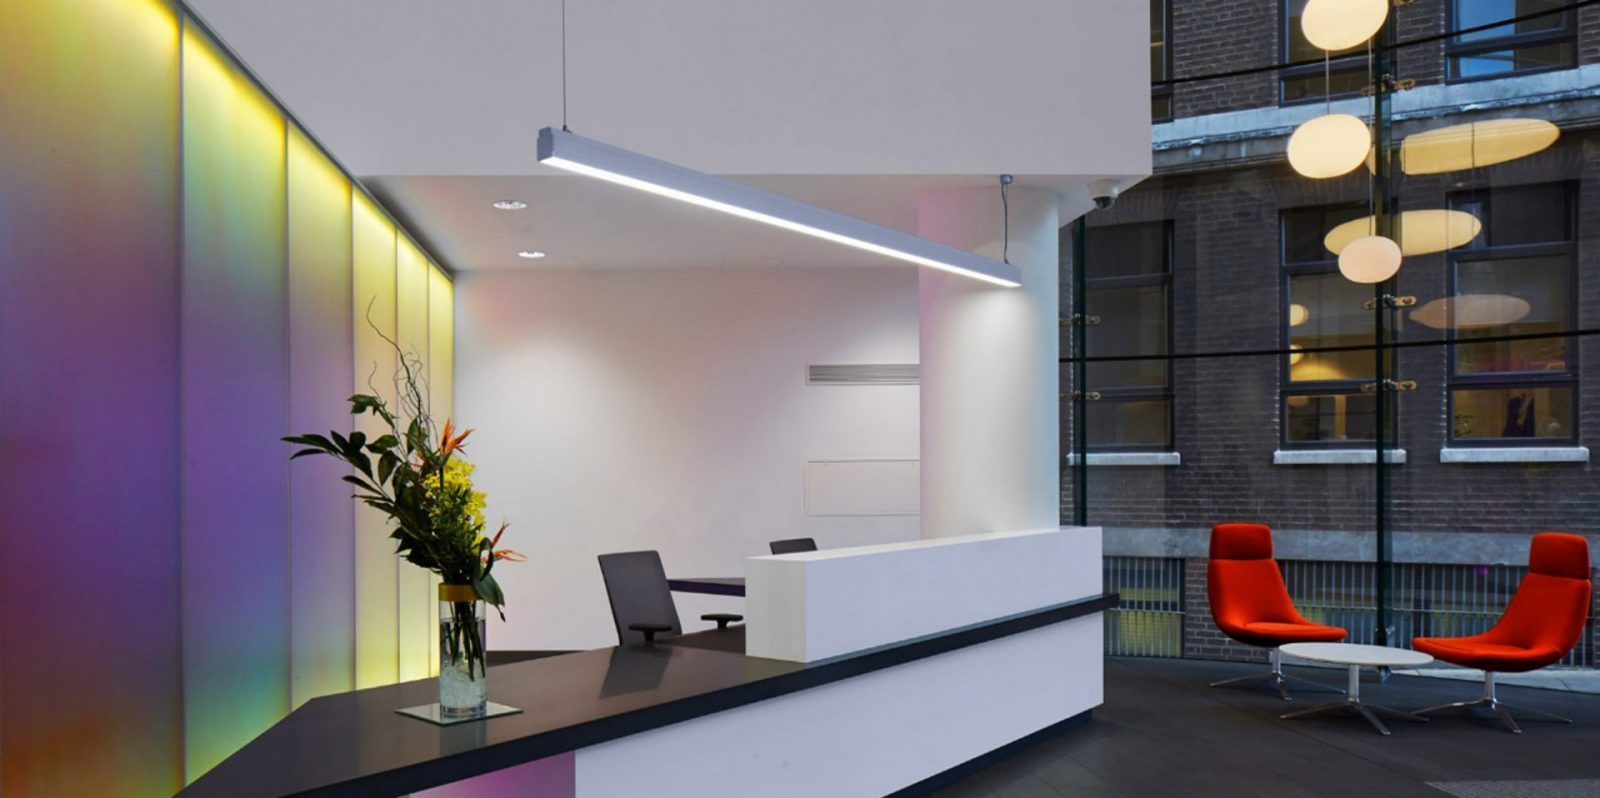 st phillips point birmingham offices refurb interiors architects jersey architecture8